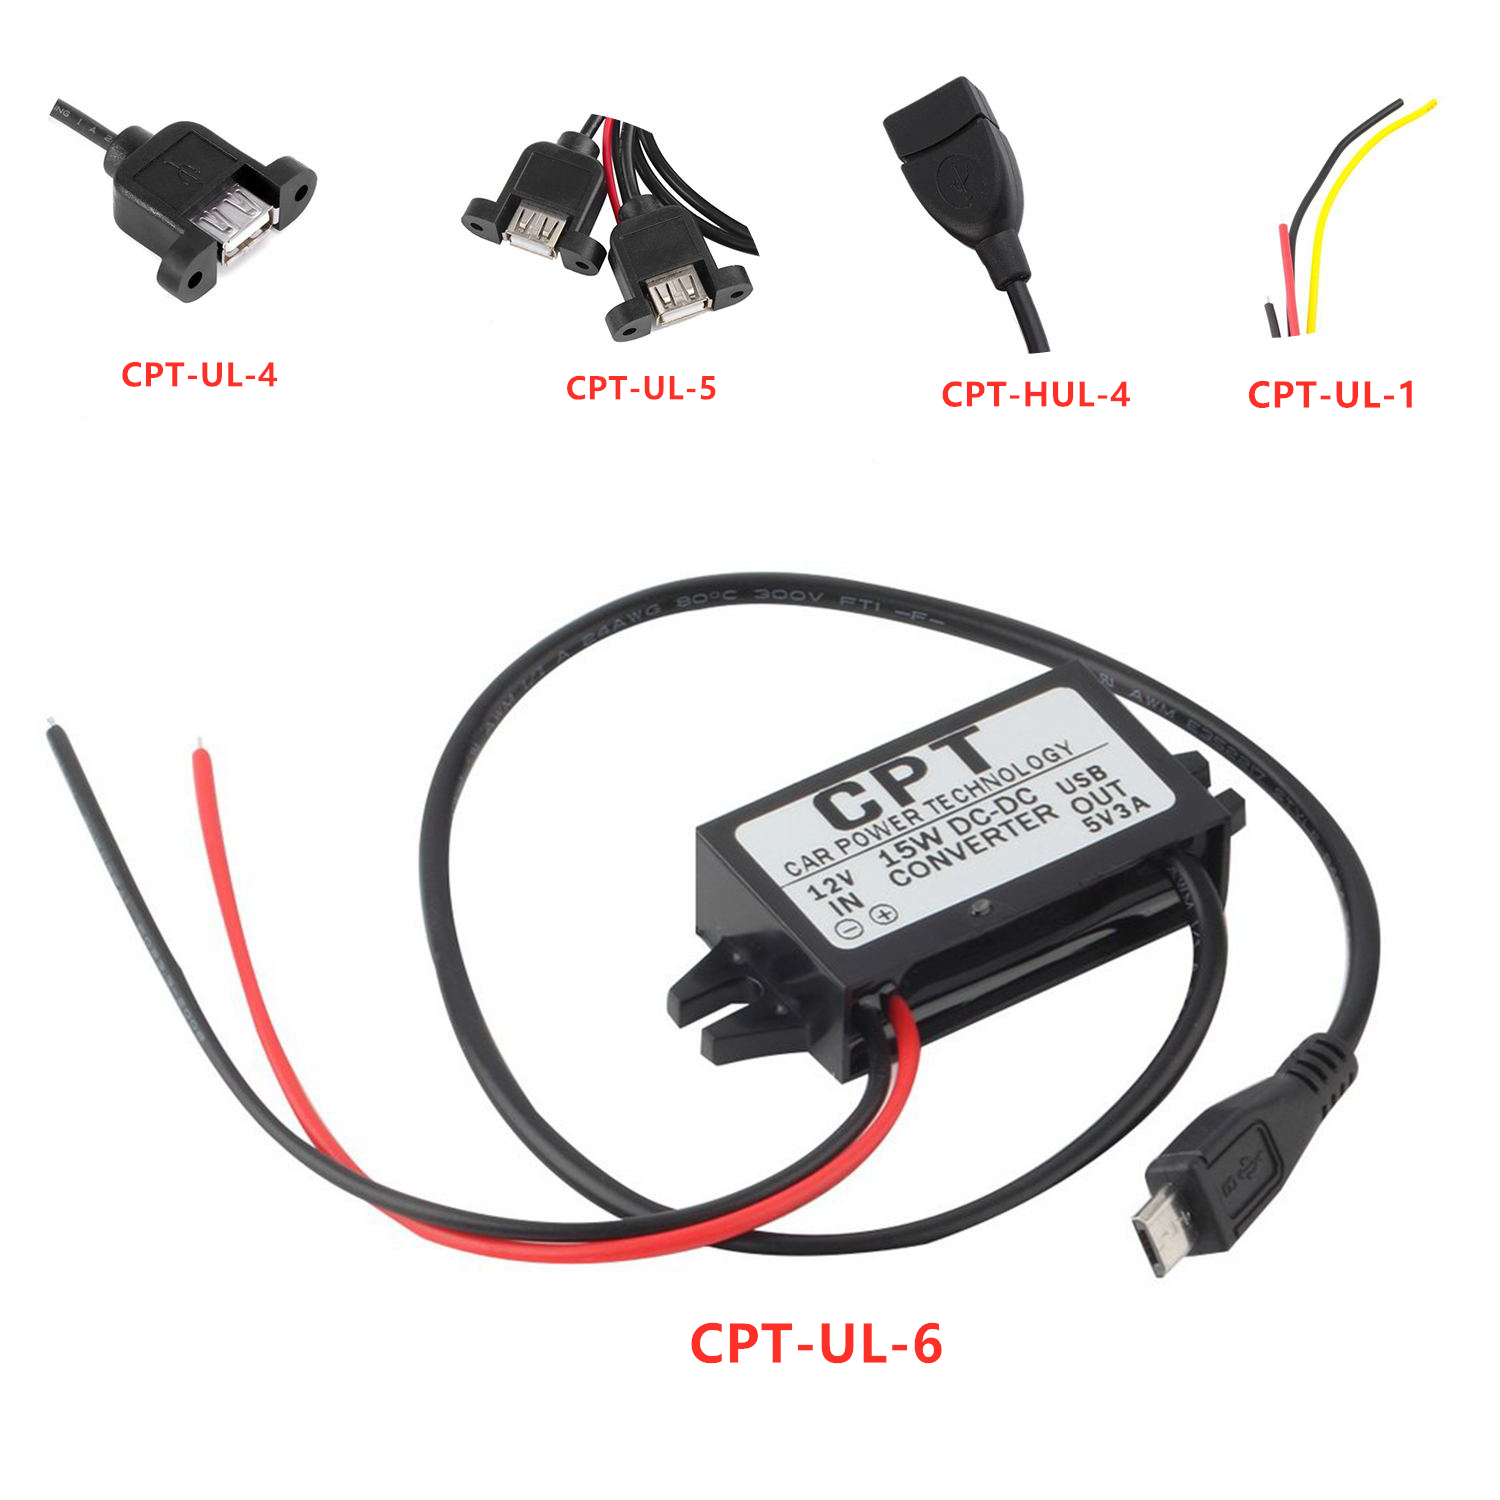 5 Types Car Power Technology Charger DC Converter Module Single Port 12V To <font><b>5V</b></font> 3A 15W with Micro <font><b>USB</b></font> Cable Dropshipping image